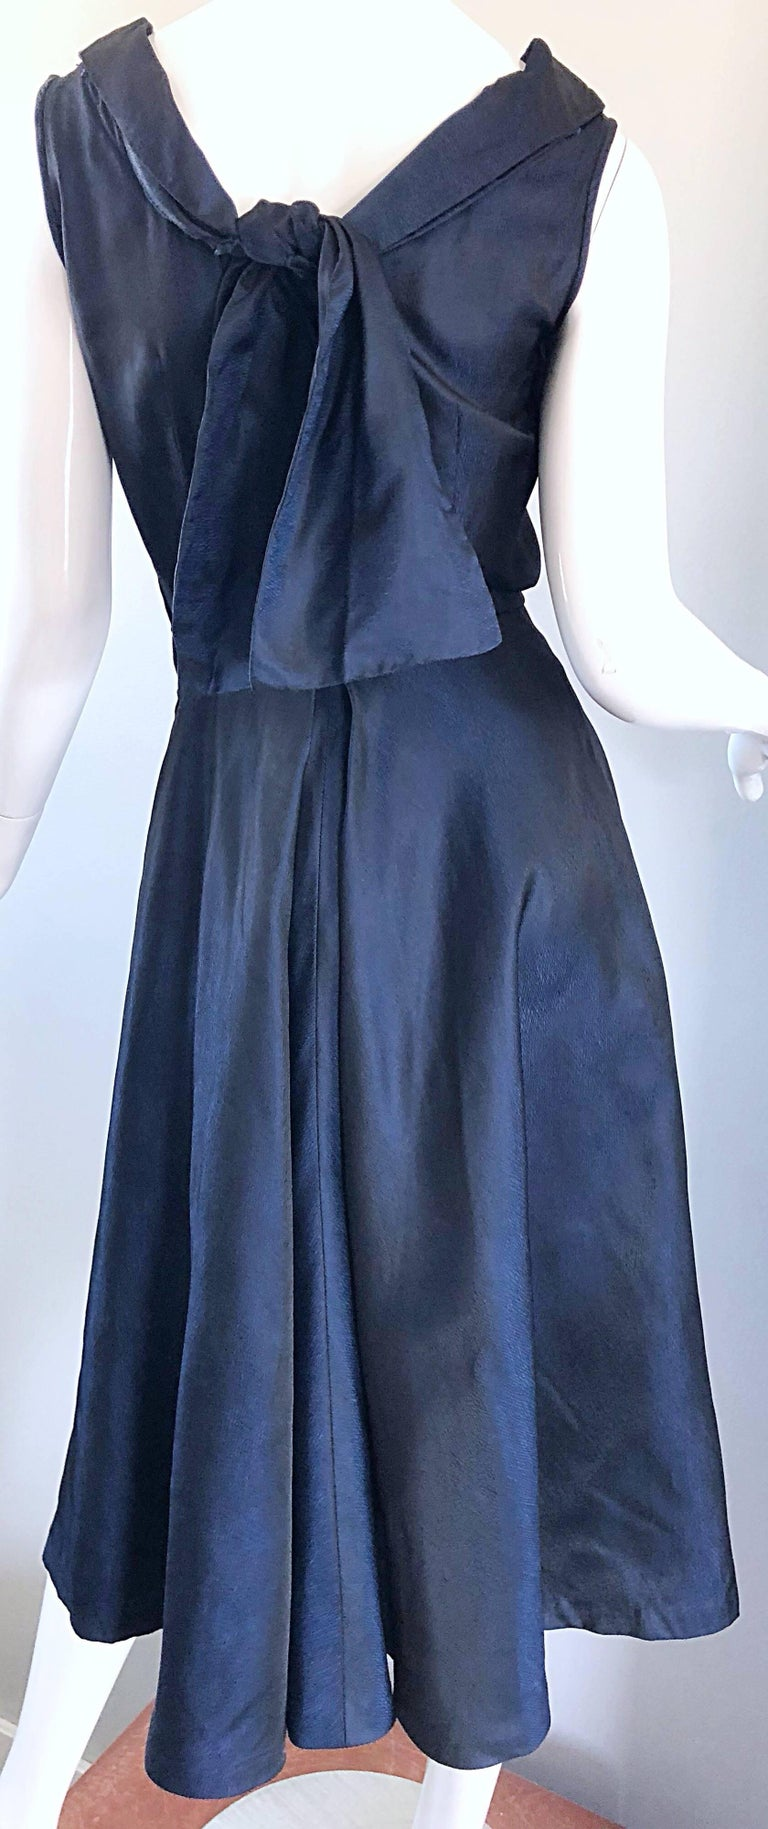 1950s Navy Midnight Blue Fit n ' Flare Vintage 50s Demi Couture Silk Dress In Excellent Condition For Sale In Chicago, IL